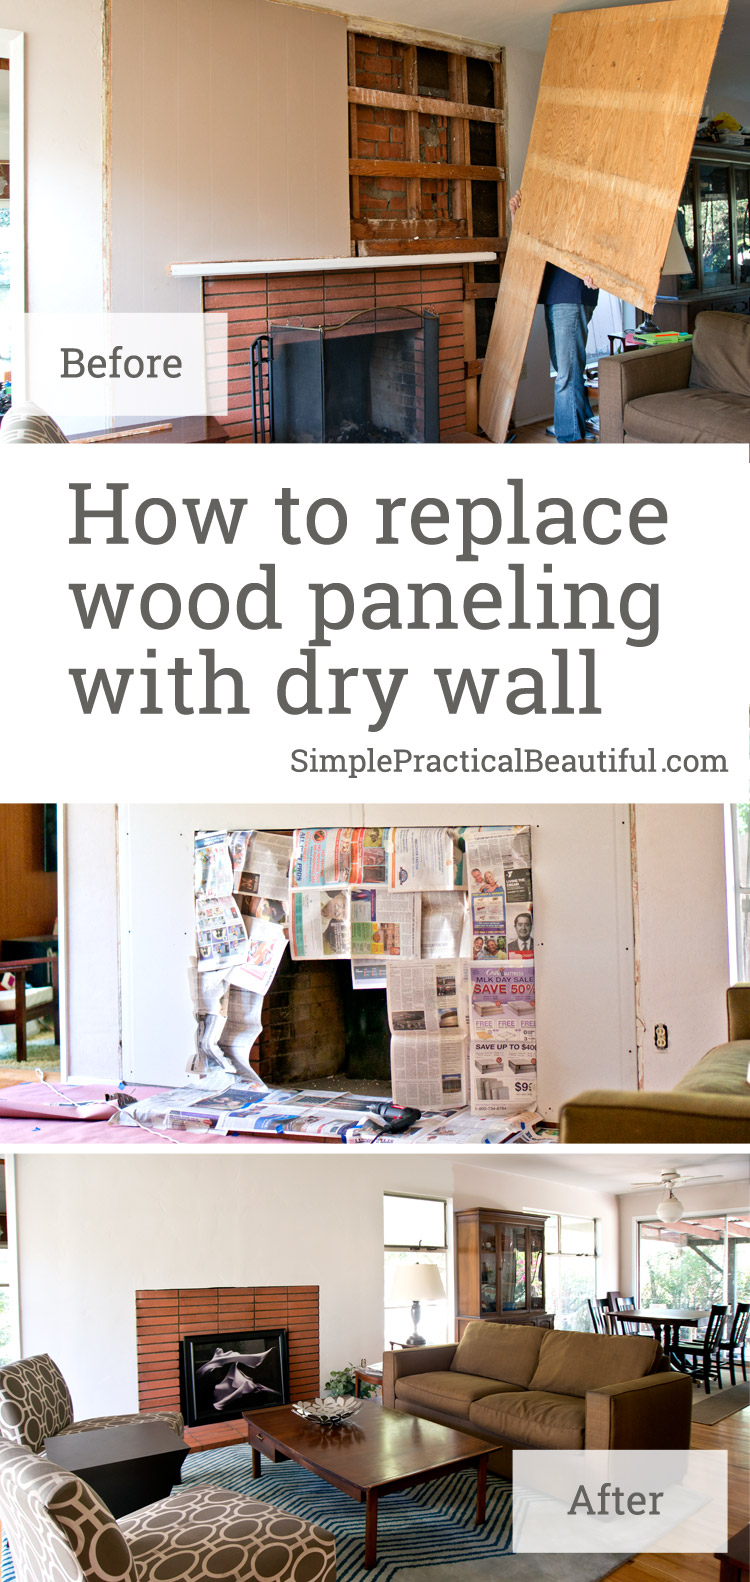 Totally transform a wall: How to remove wood paneling, prepare for dry wall, hang dry wall, mudding, wall texture, and painting